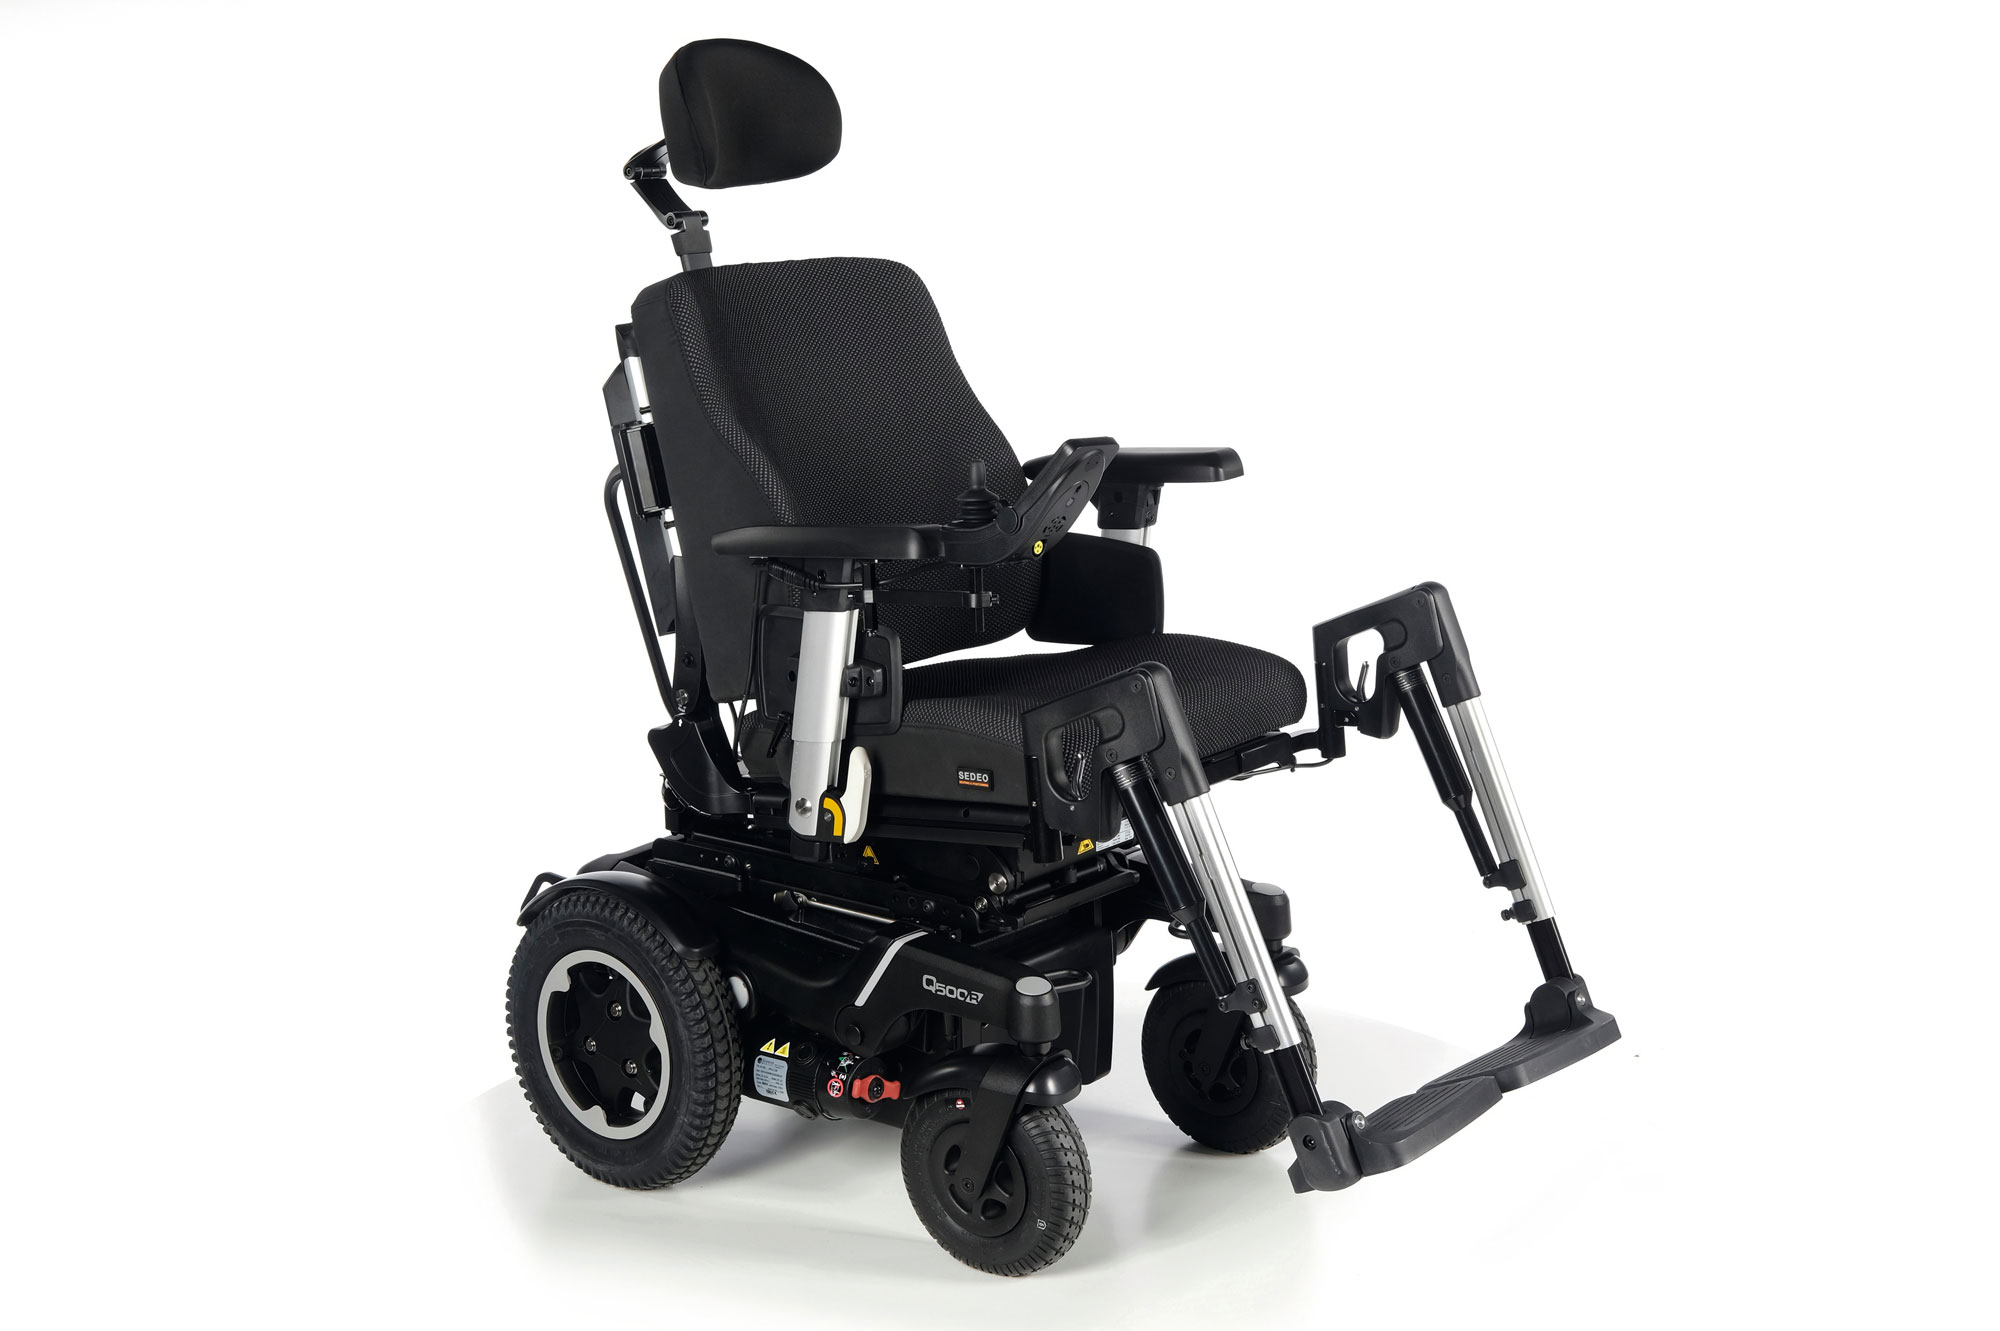 Quickie Q500 R SEDEO PRO Rear-Wheel Powered Wheelchair